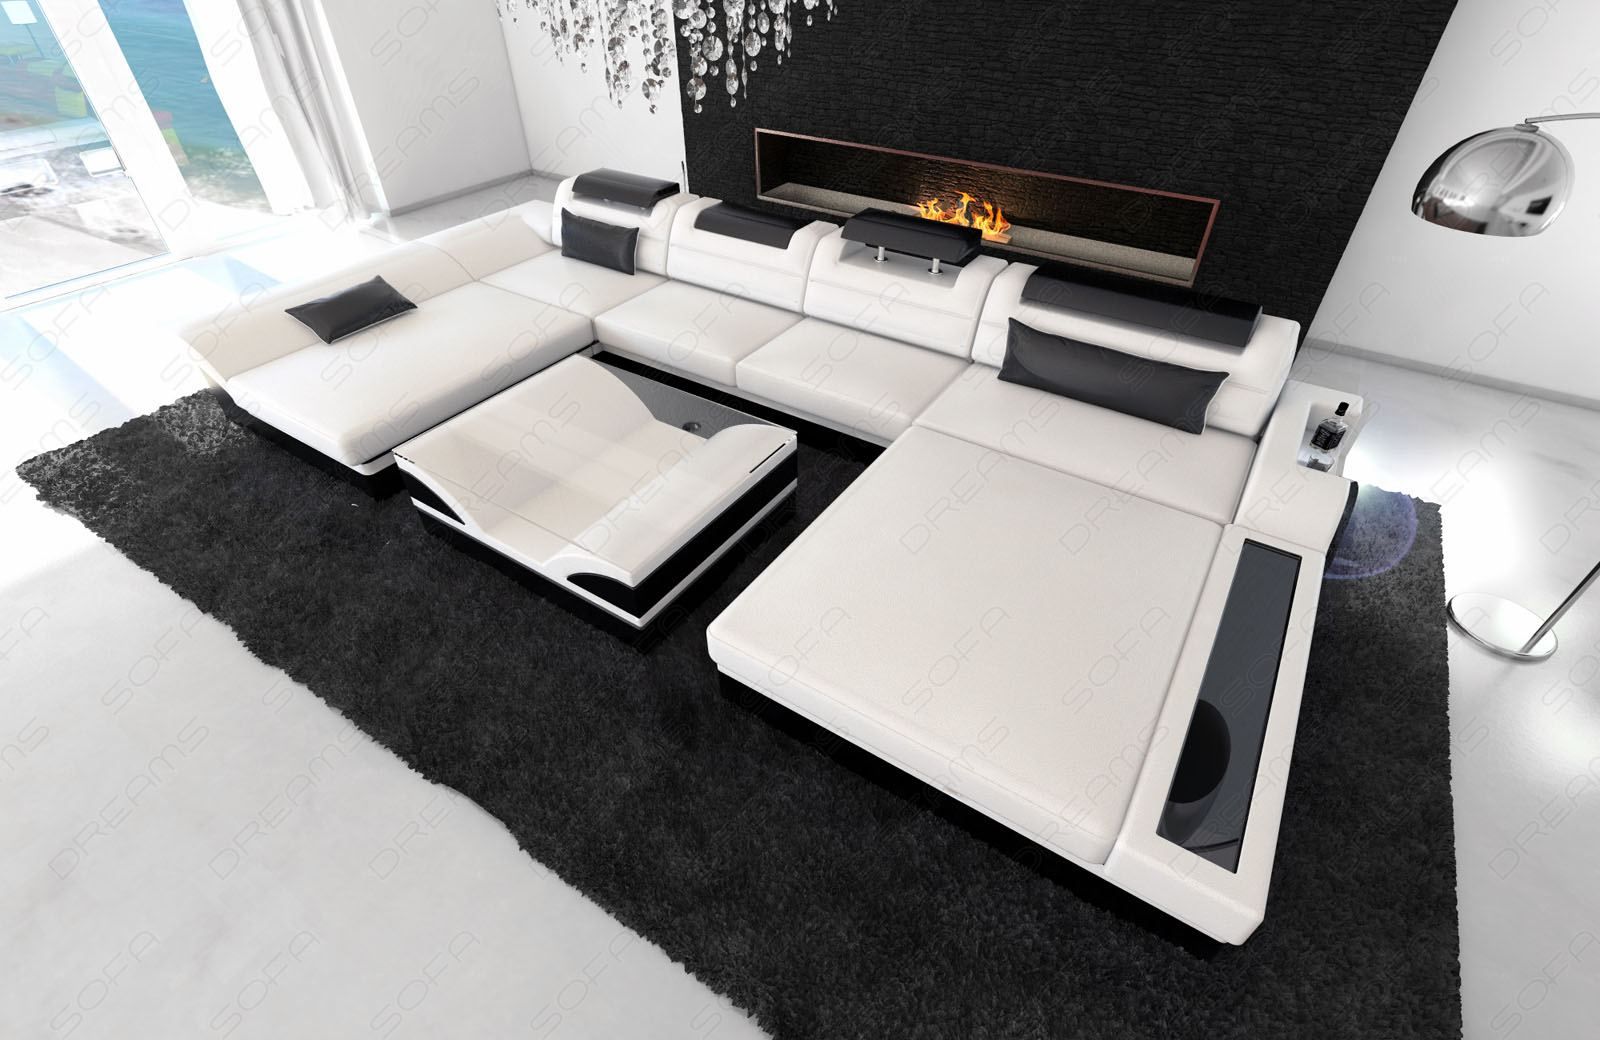 designersofa monza xxl mit led beleuchtung bigsofa weiss. Black Bedroom Furniture Sets. Home Design Ideas